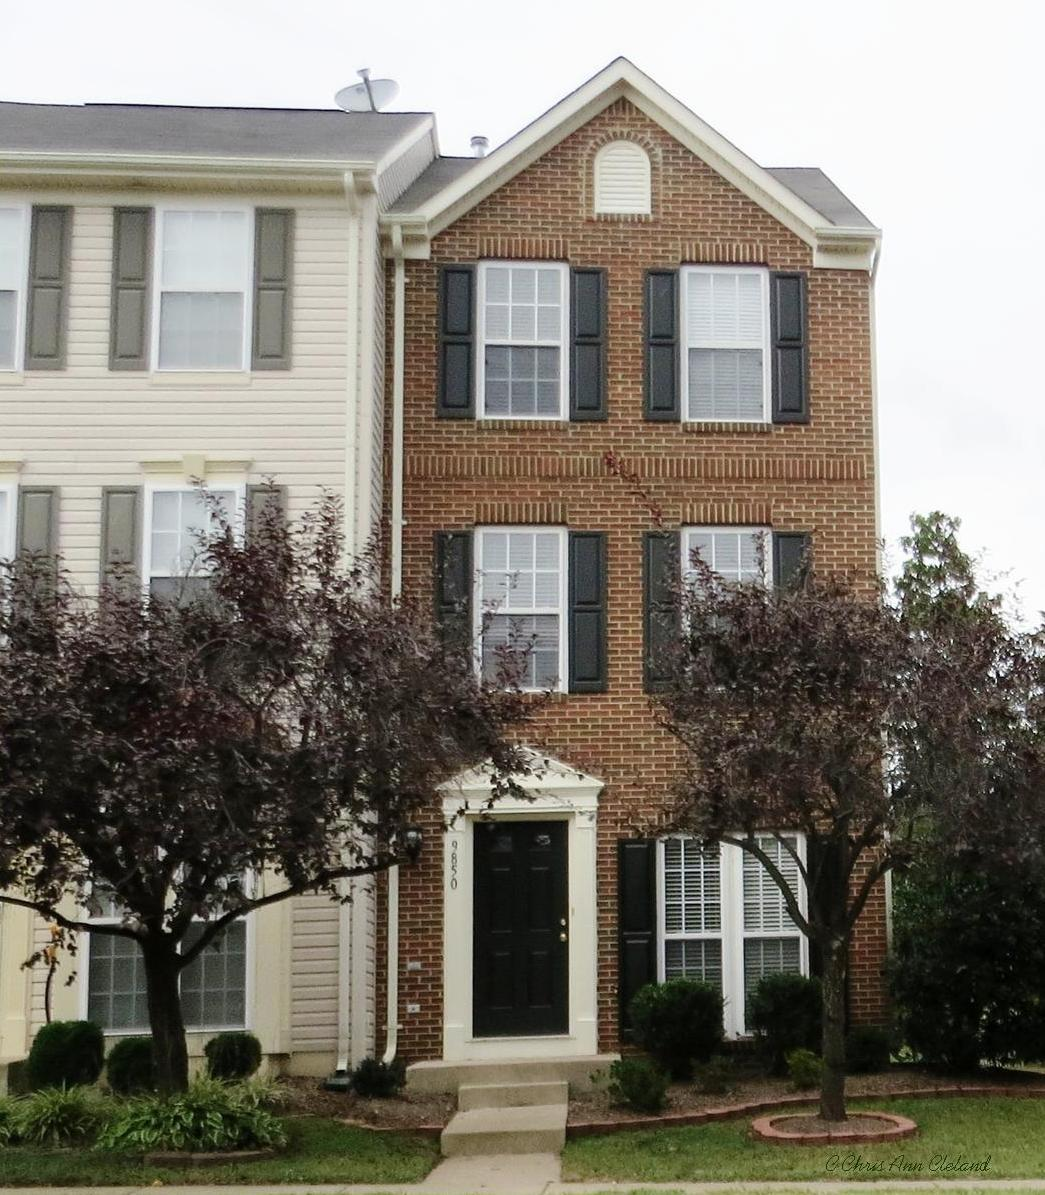 9850 Maitland Loop is currently listed for $275,000.